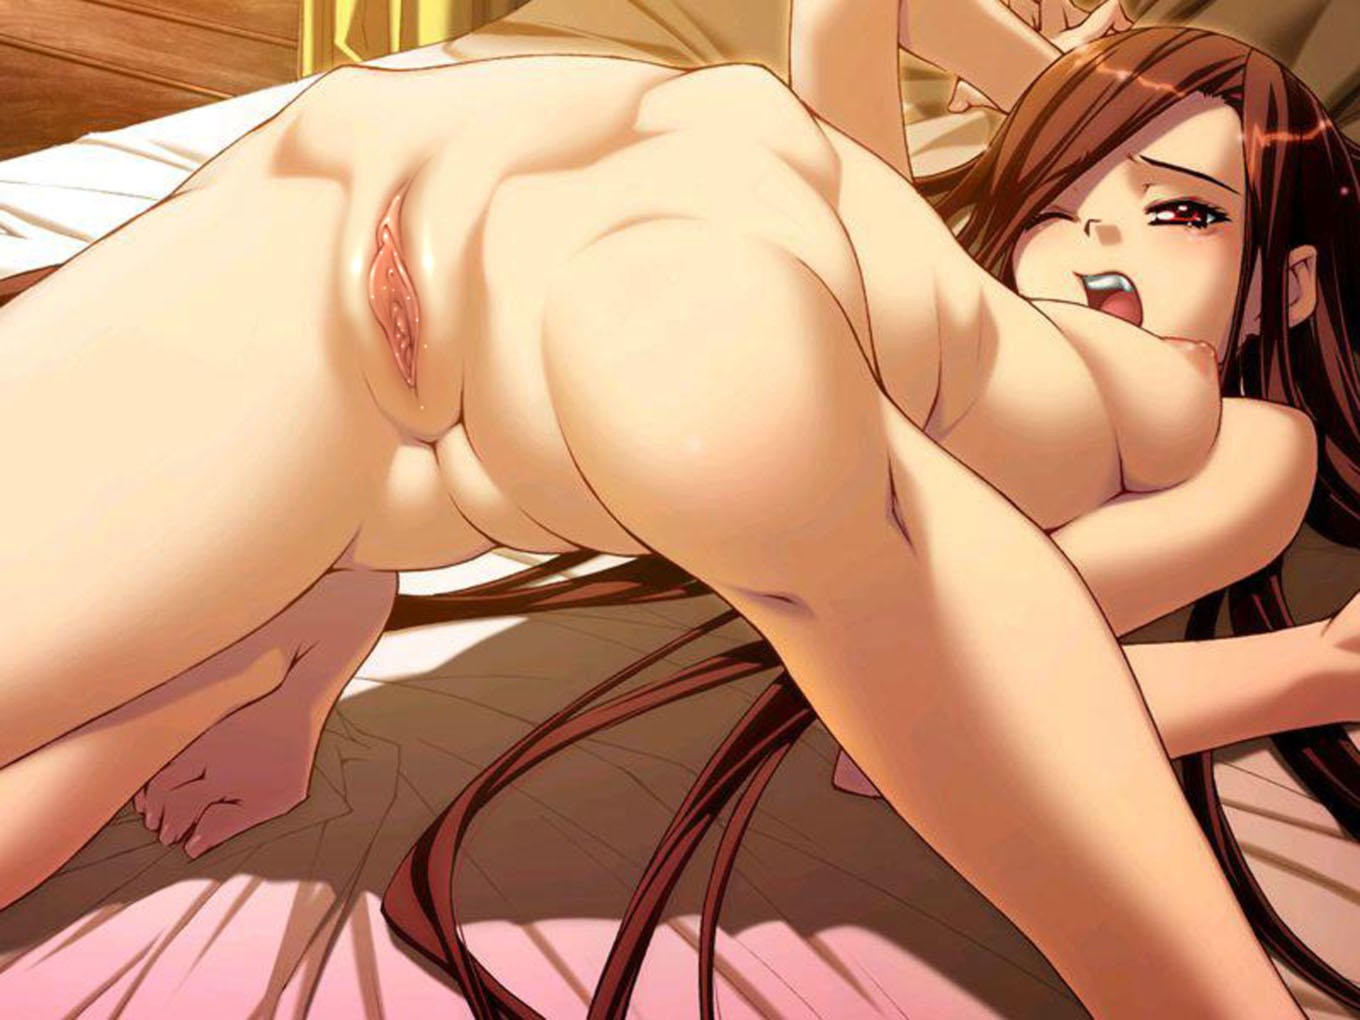 Abstract hentai porn pics sexy videos